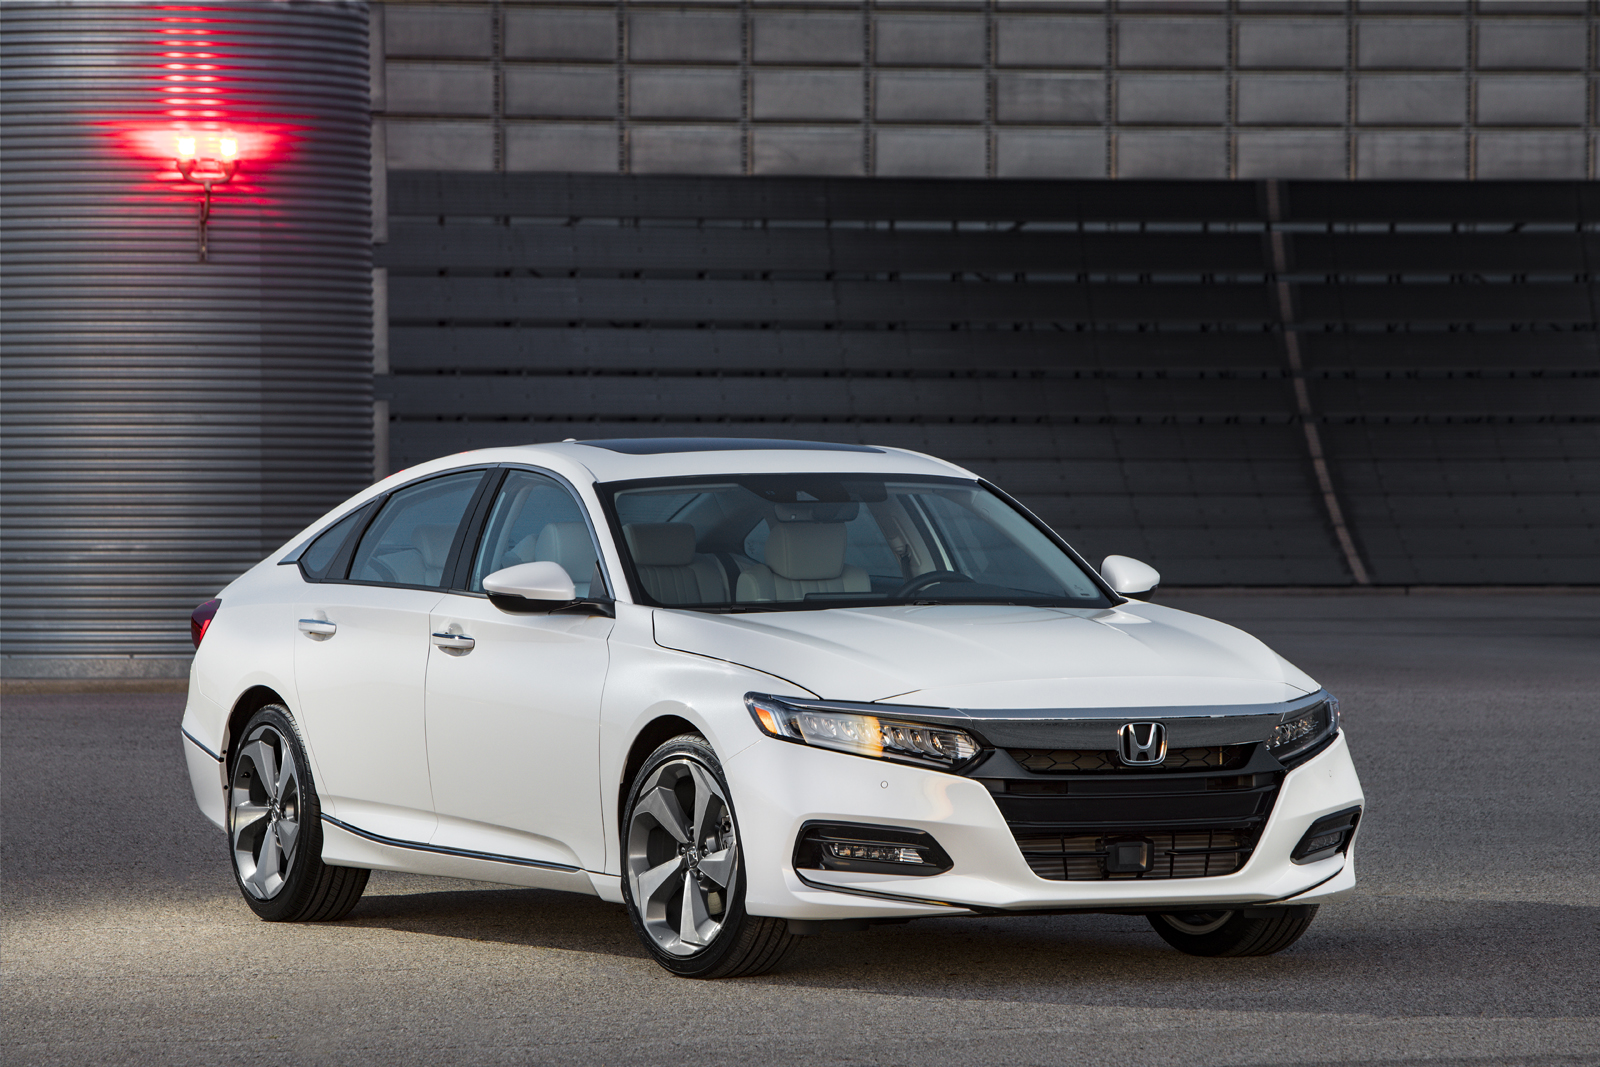 2018 honda accord debuts with turbo engines  10 speed transmission  u00bb autoguide com news 2001 toyota corolla manual transmission 2001 toyota corolla manual transmission oil change